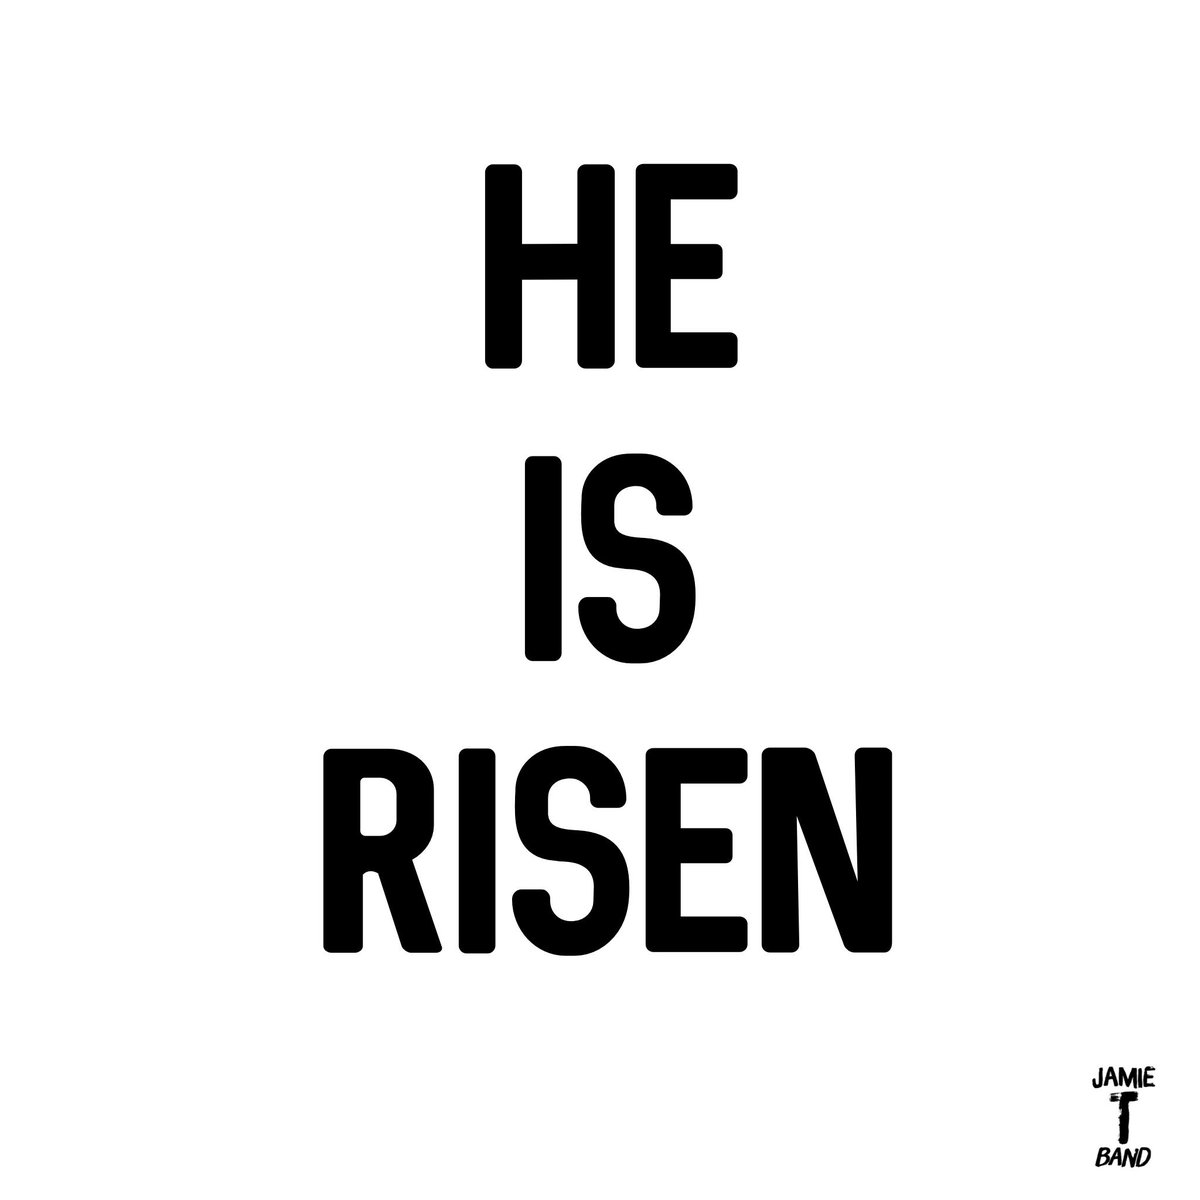 Happy Easter • • • Follow @jamietministry #jesus #holyspirit #spirit #bible #god #godisgood #bible #scripture #love #lord #believe #trust #instagram #Jesuschrist #Christ #praise #inspiration #hope #christian #faith #quotes #sayings #peace #pic #beauty #easter #resurrection